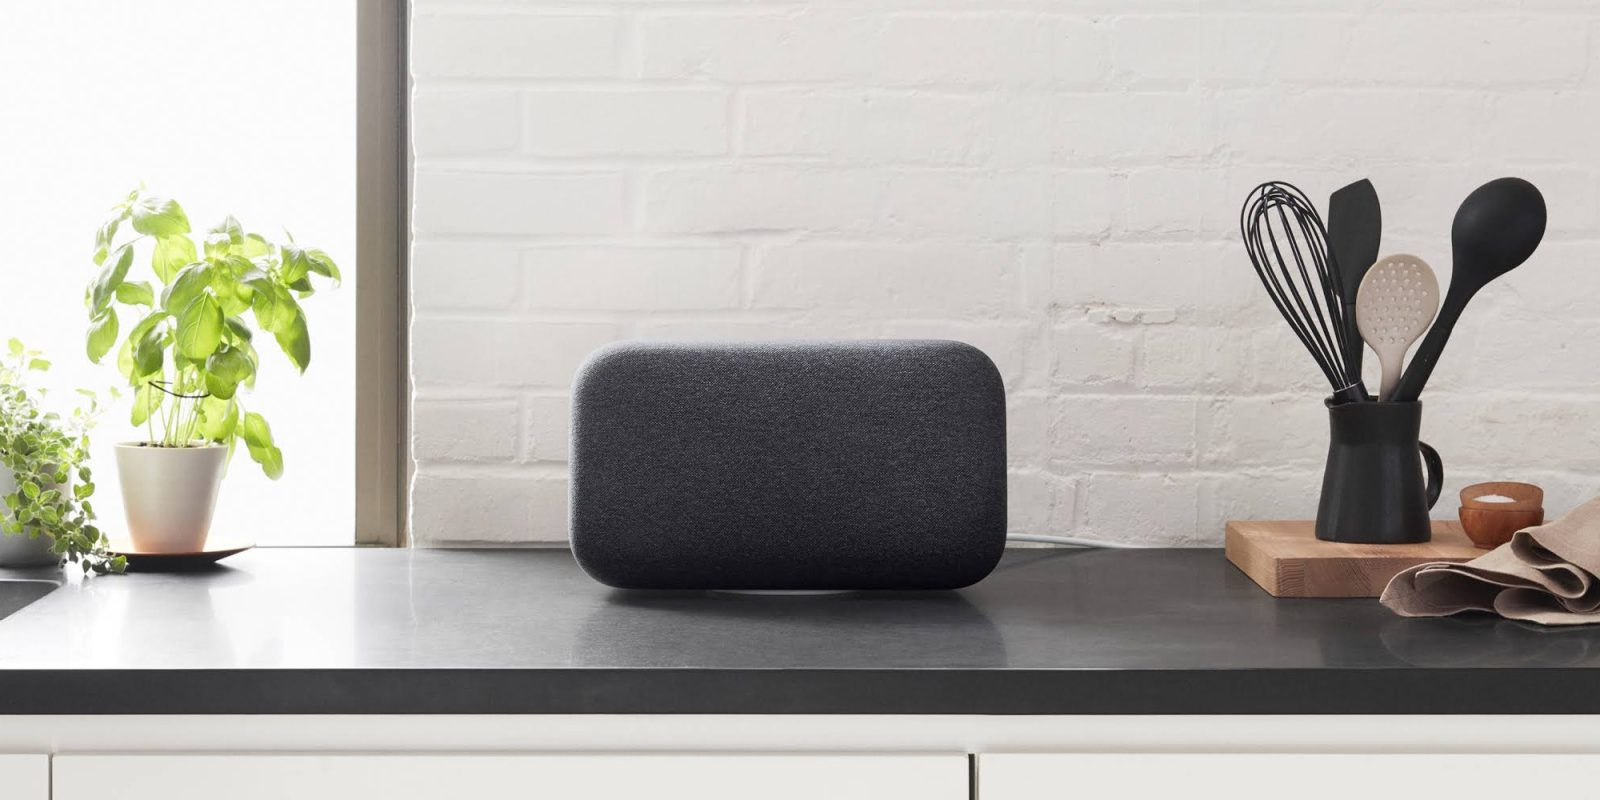 Google Home Max is on sale, plus Moto G6 Play, more - 9to5Google